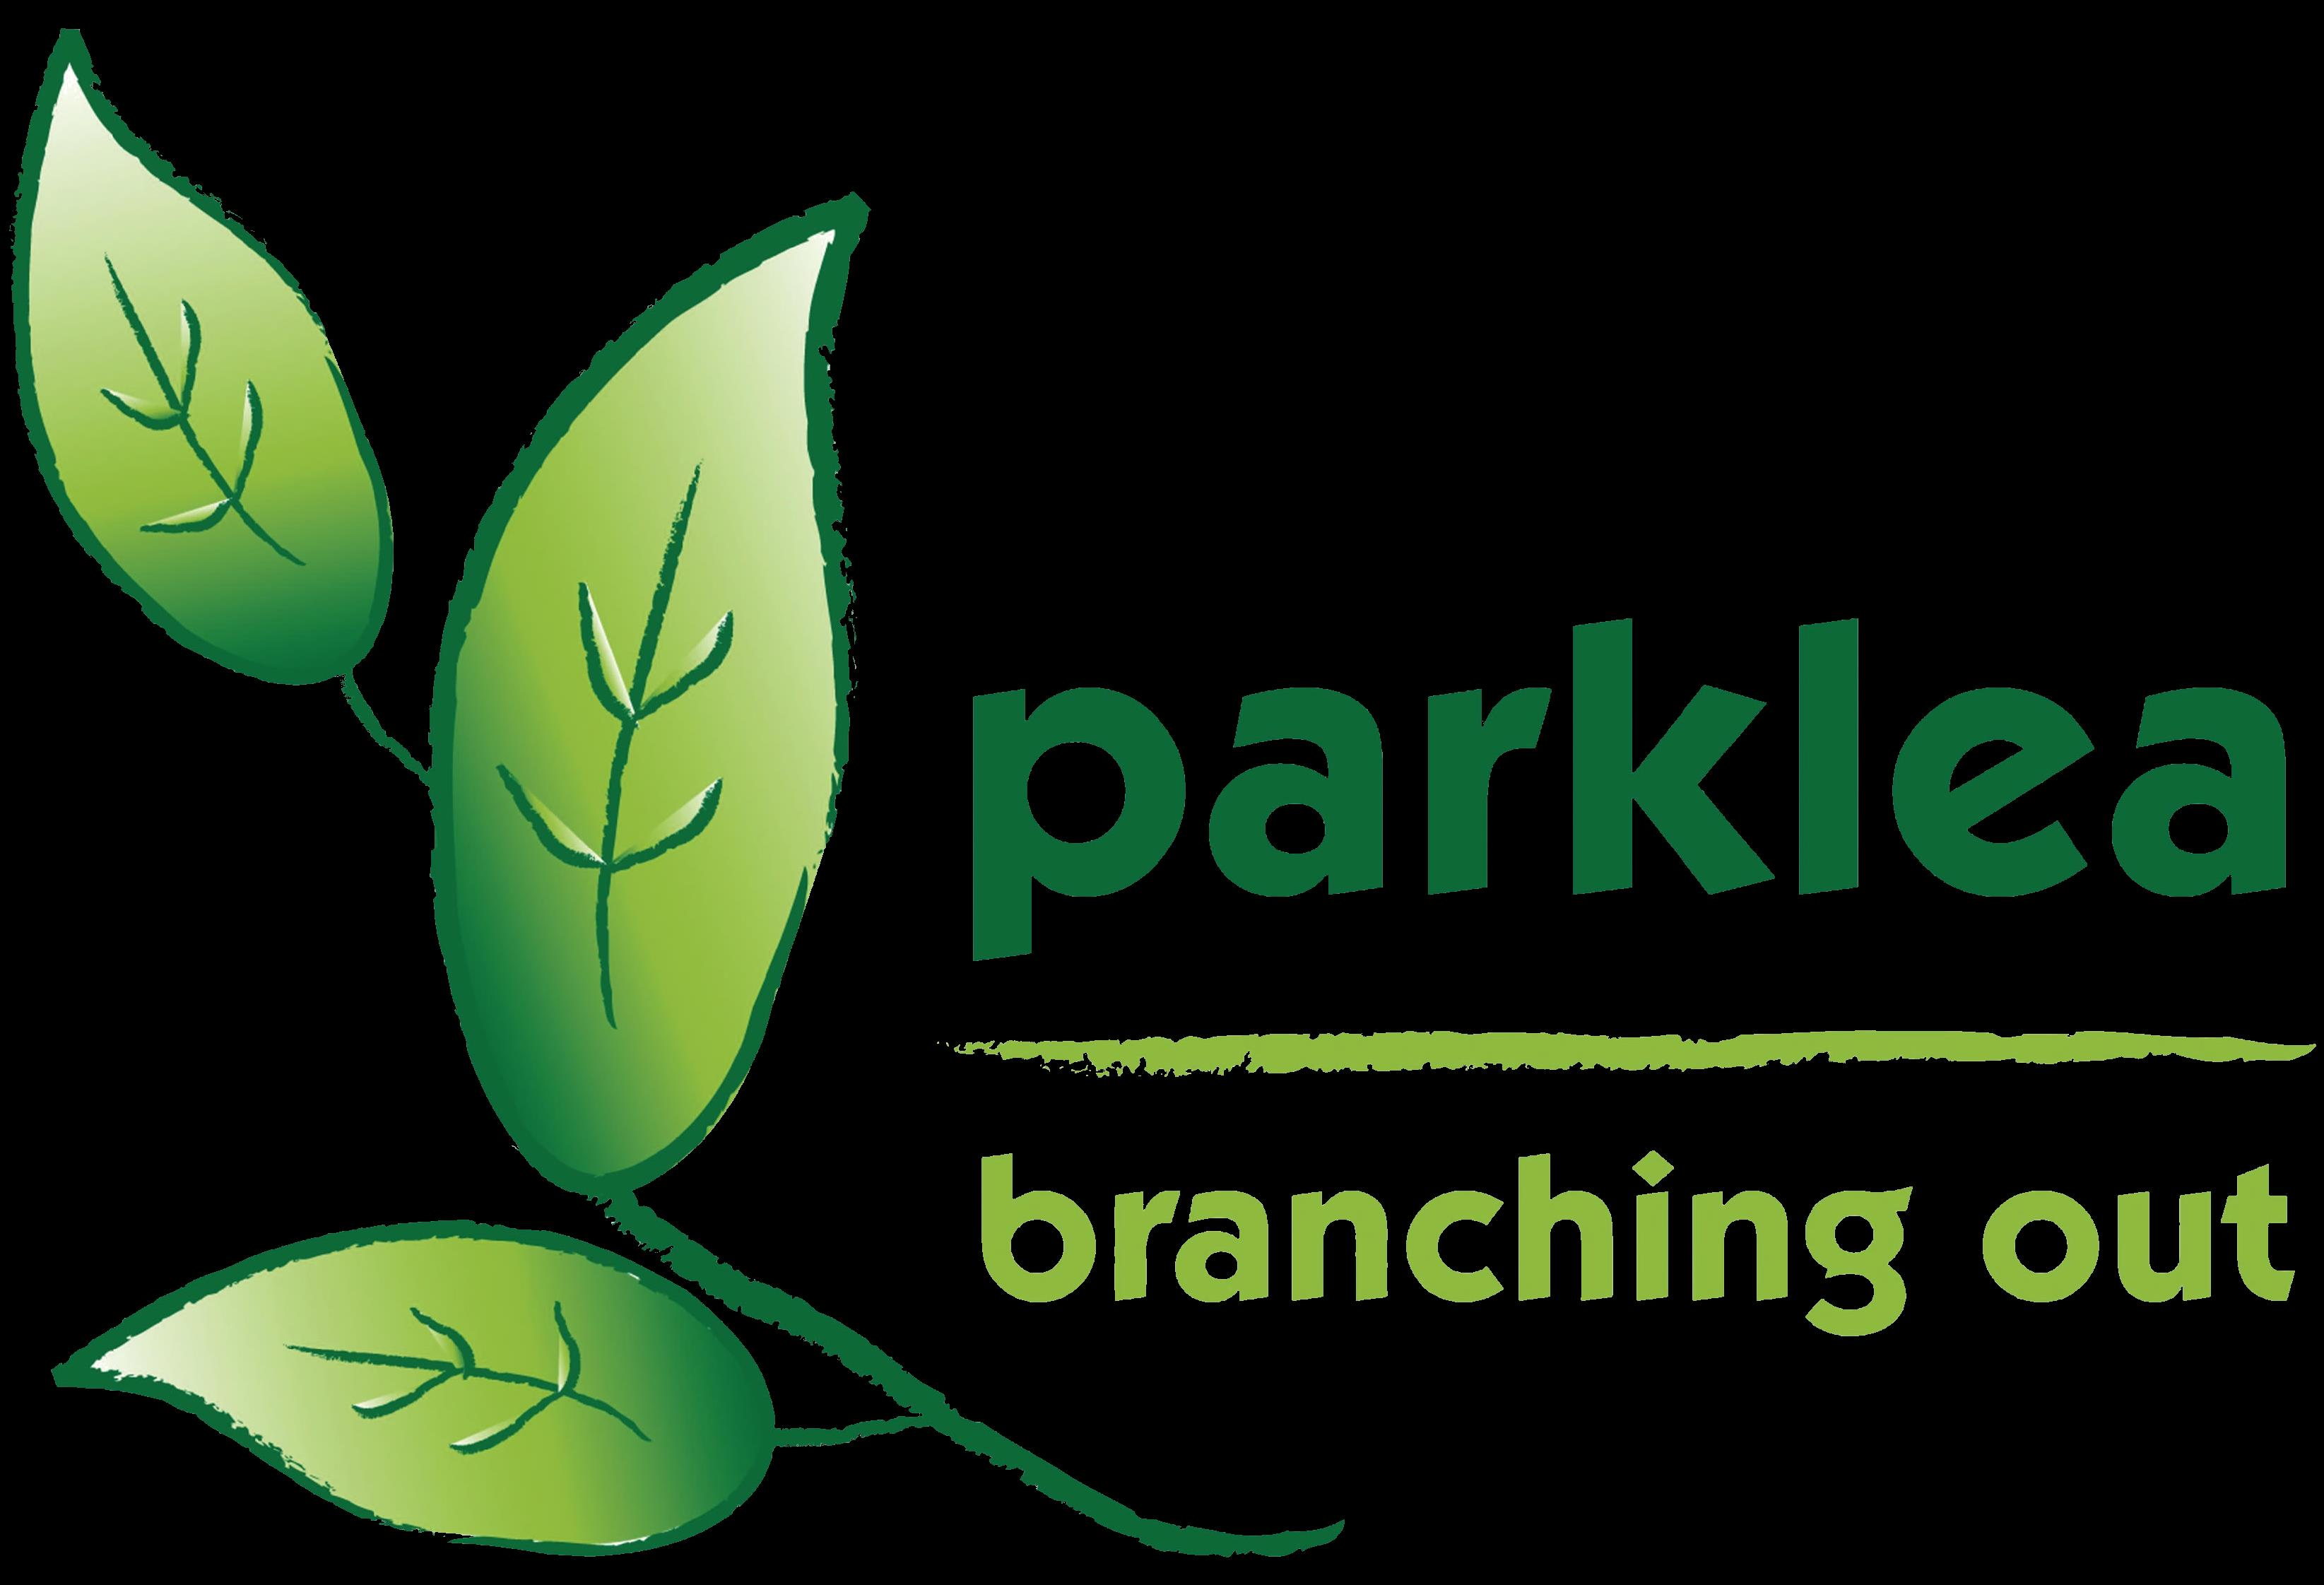 Parklea Branching Out logo